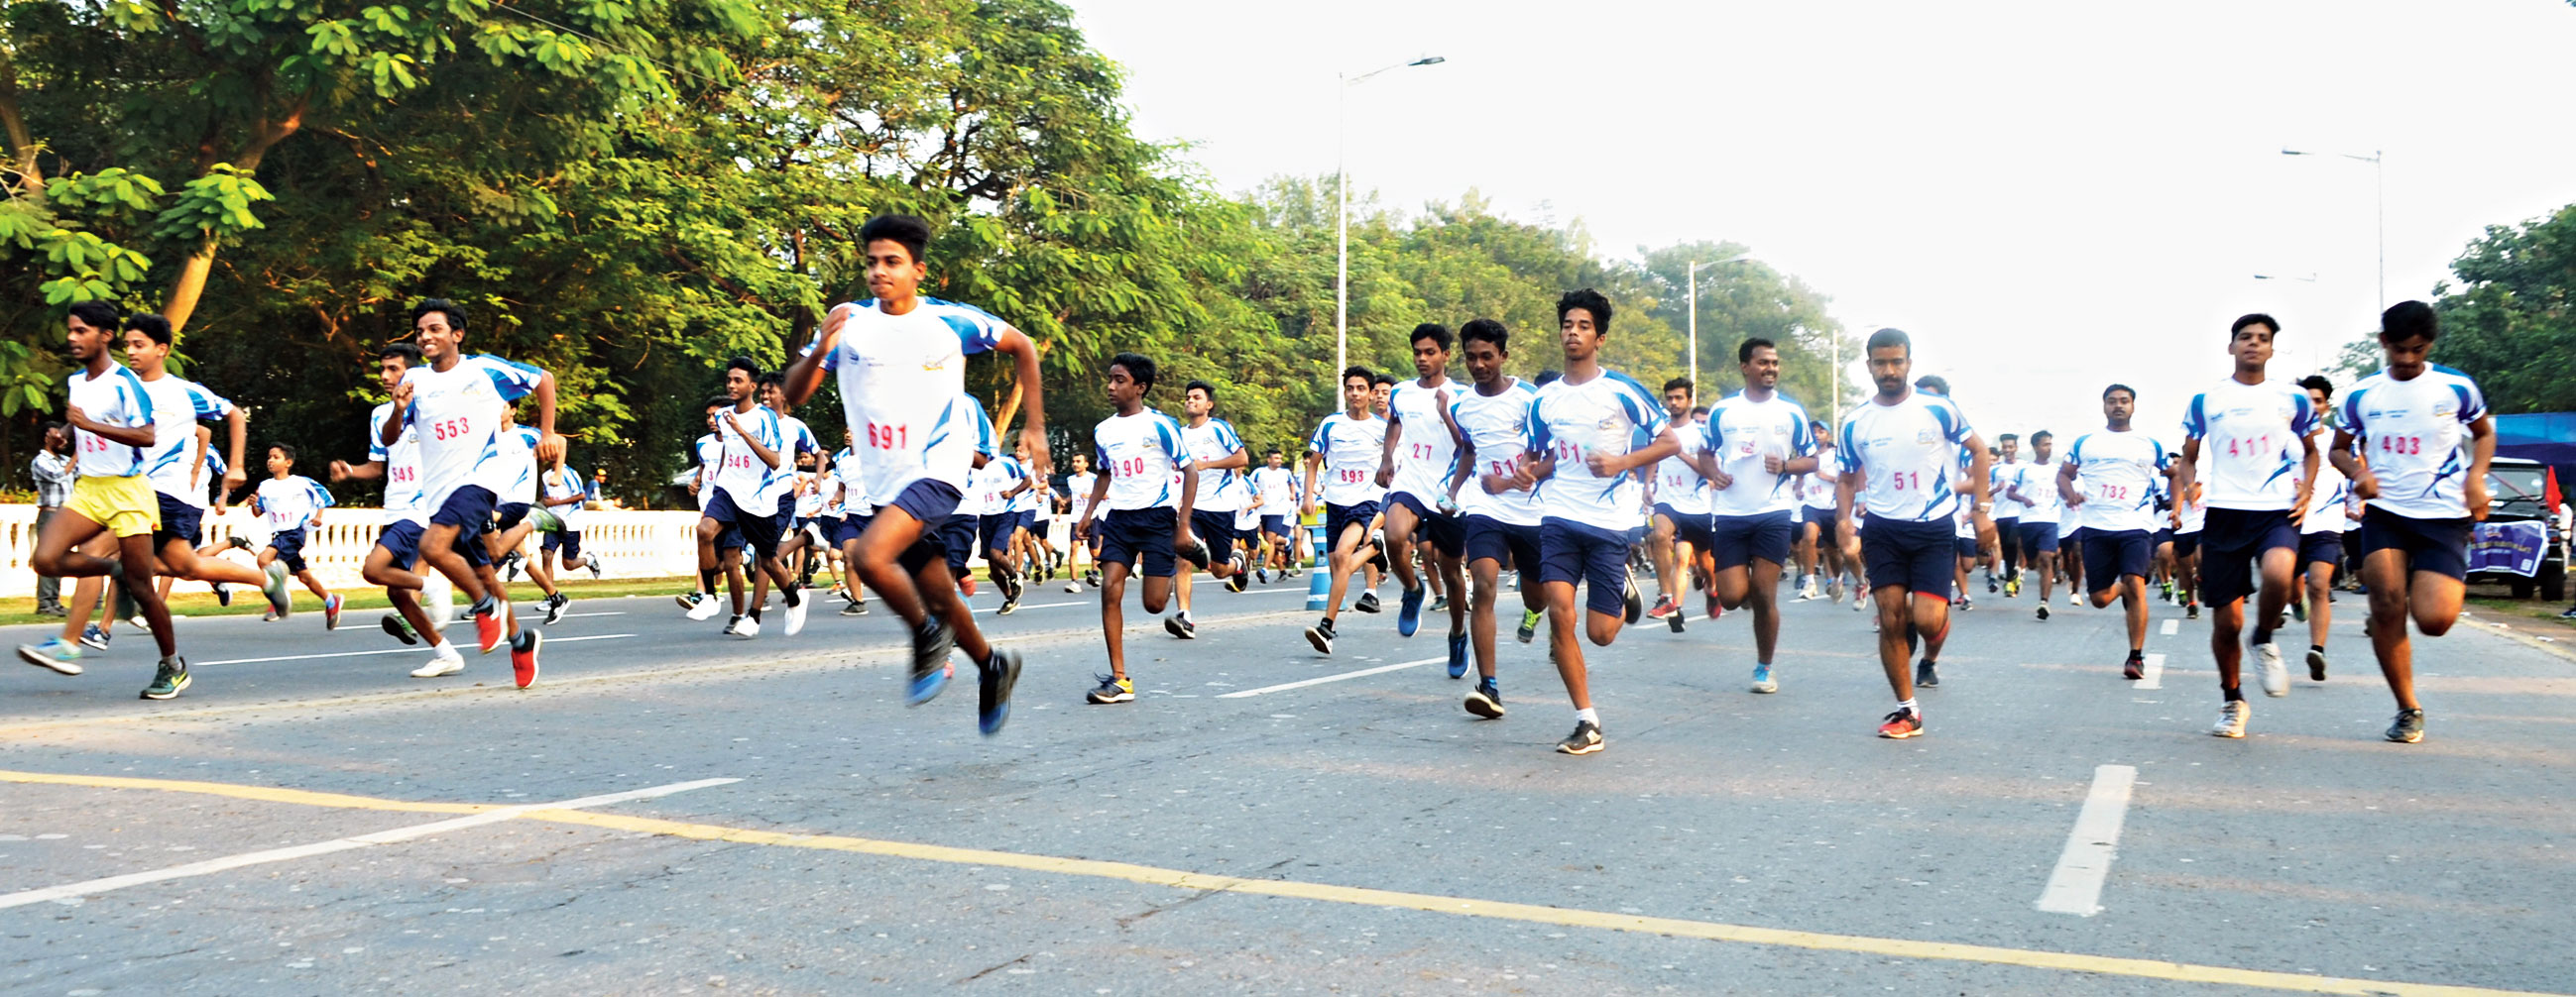 Participants at the Diamond Jubilee Marathon Race, presented by the Council for the Indian School Certificate Examinations in association with The Telegraph Young Metro, on Red Road on Sunday.